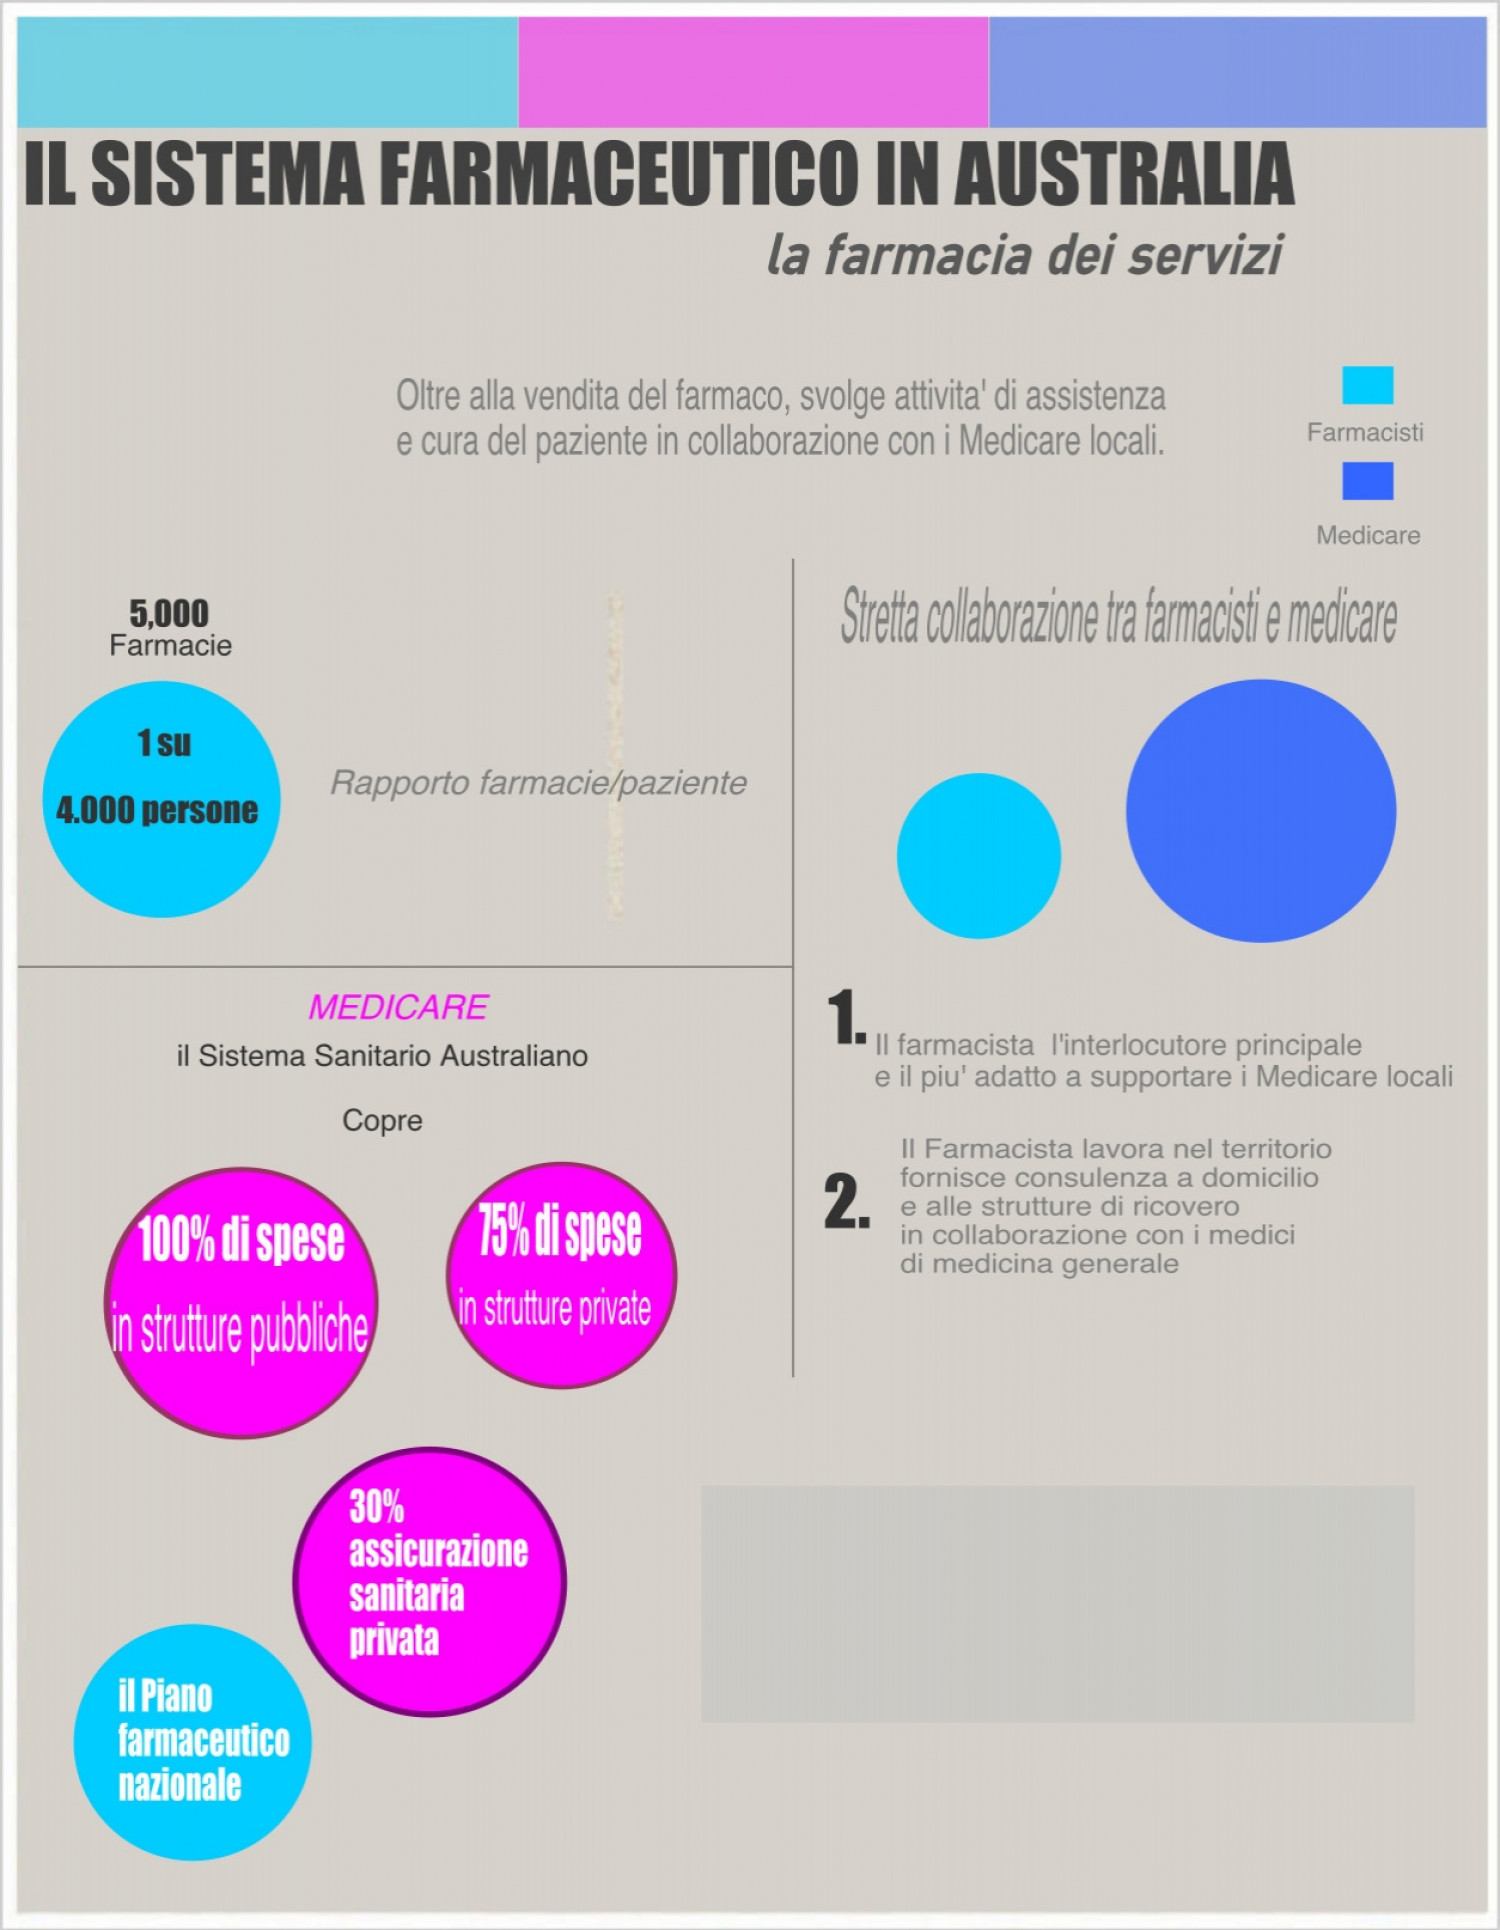 Pharmacy services Infographic